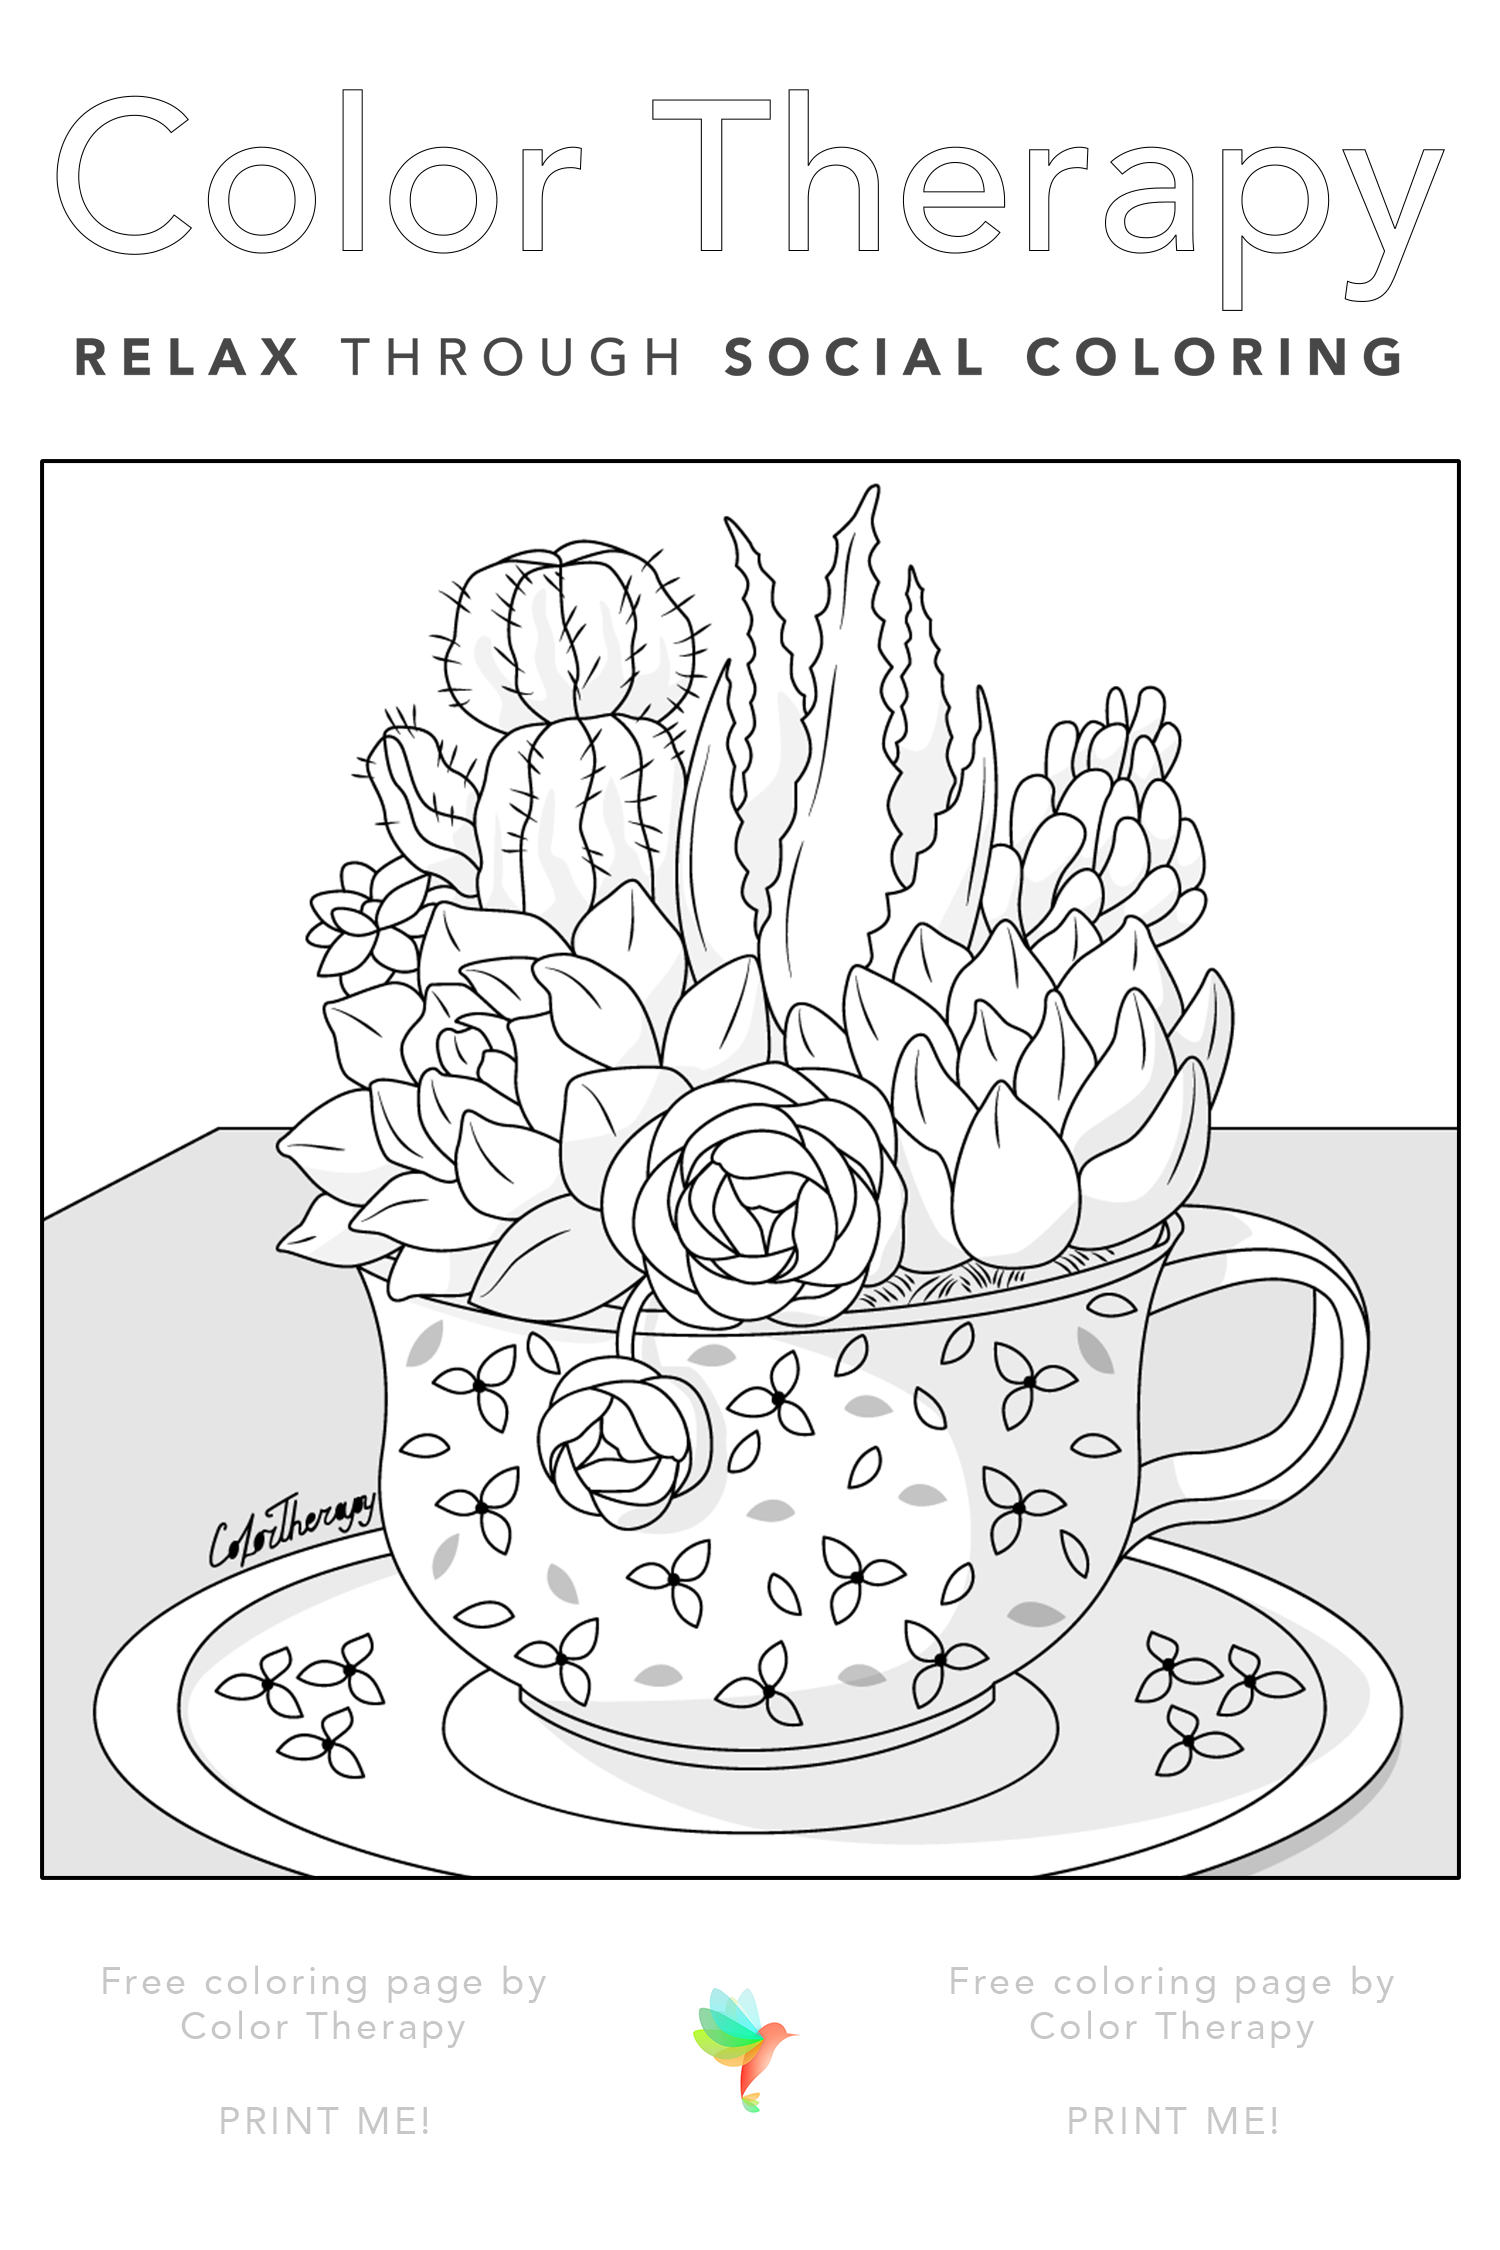 Color Therapy Gift Of The Day Free Coloring Page Coloring Pages Free Coloring Pages Coloring Books